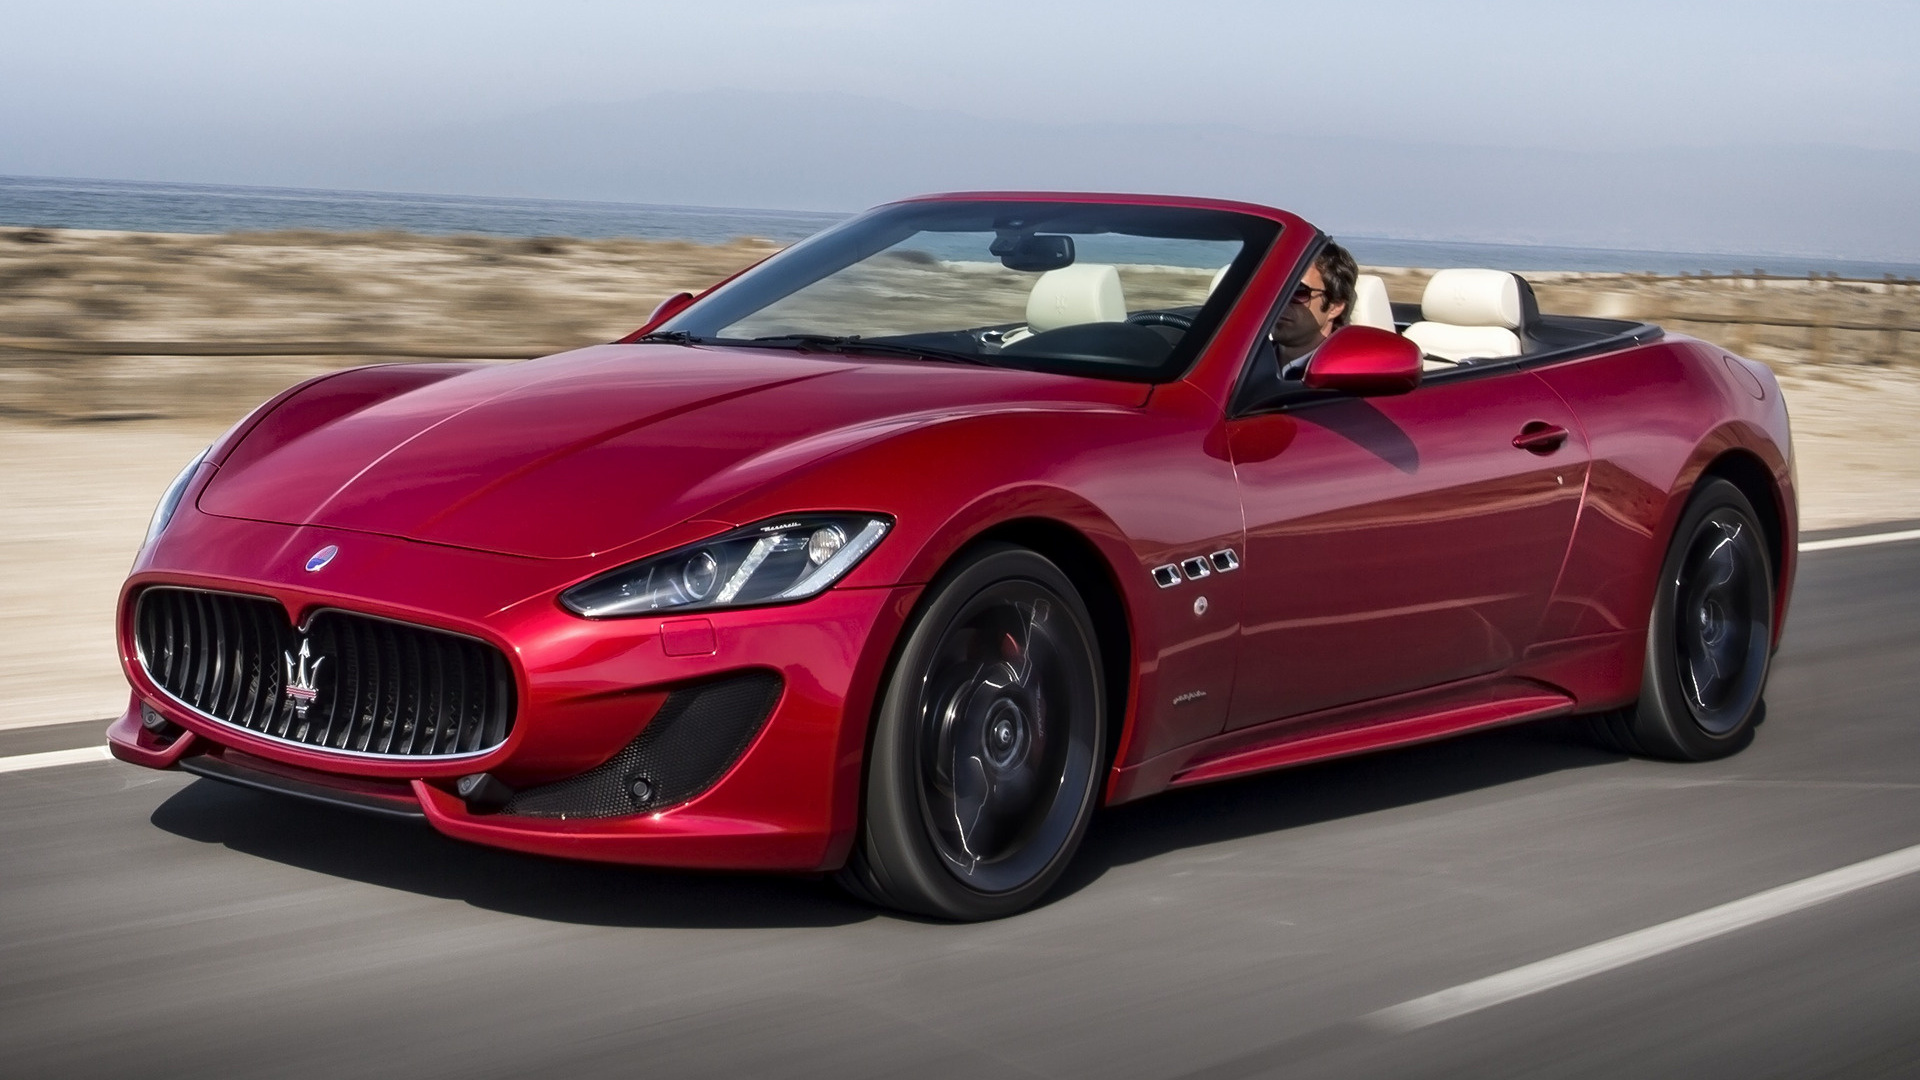 Maserati GranCabrio Sport (2012) Wallpapers and HD Images - Car Pixel